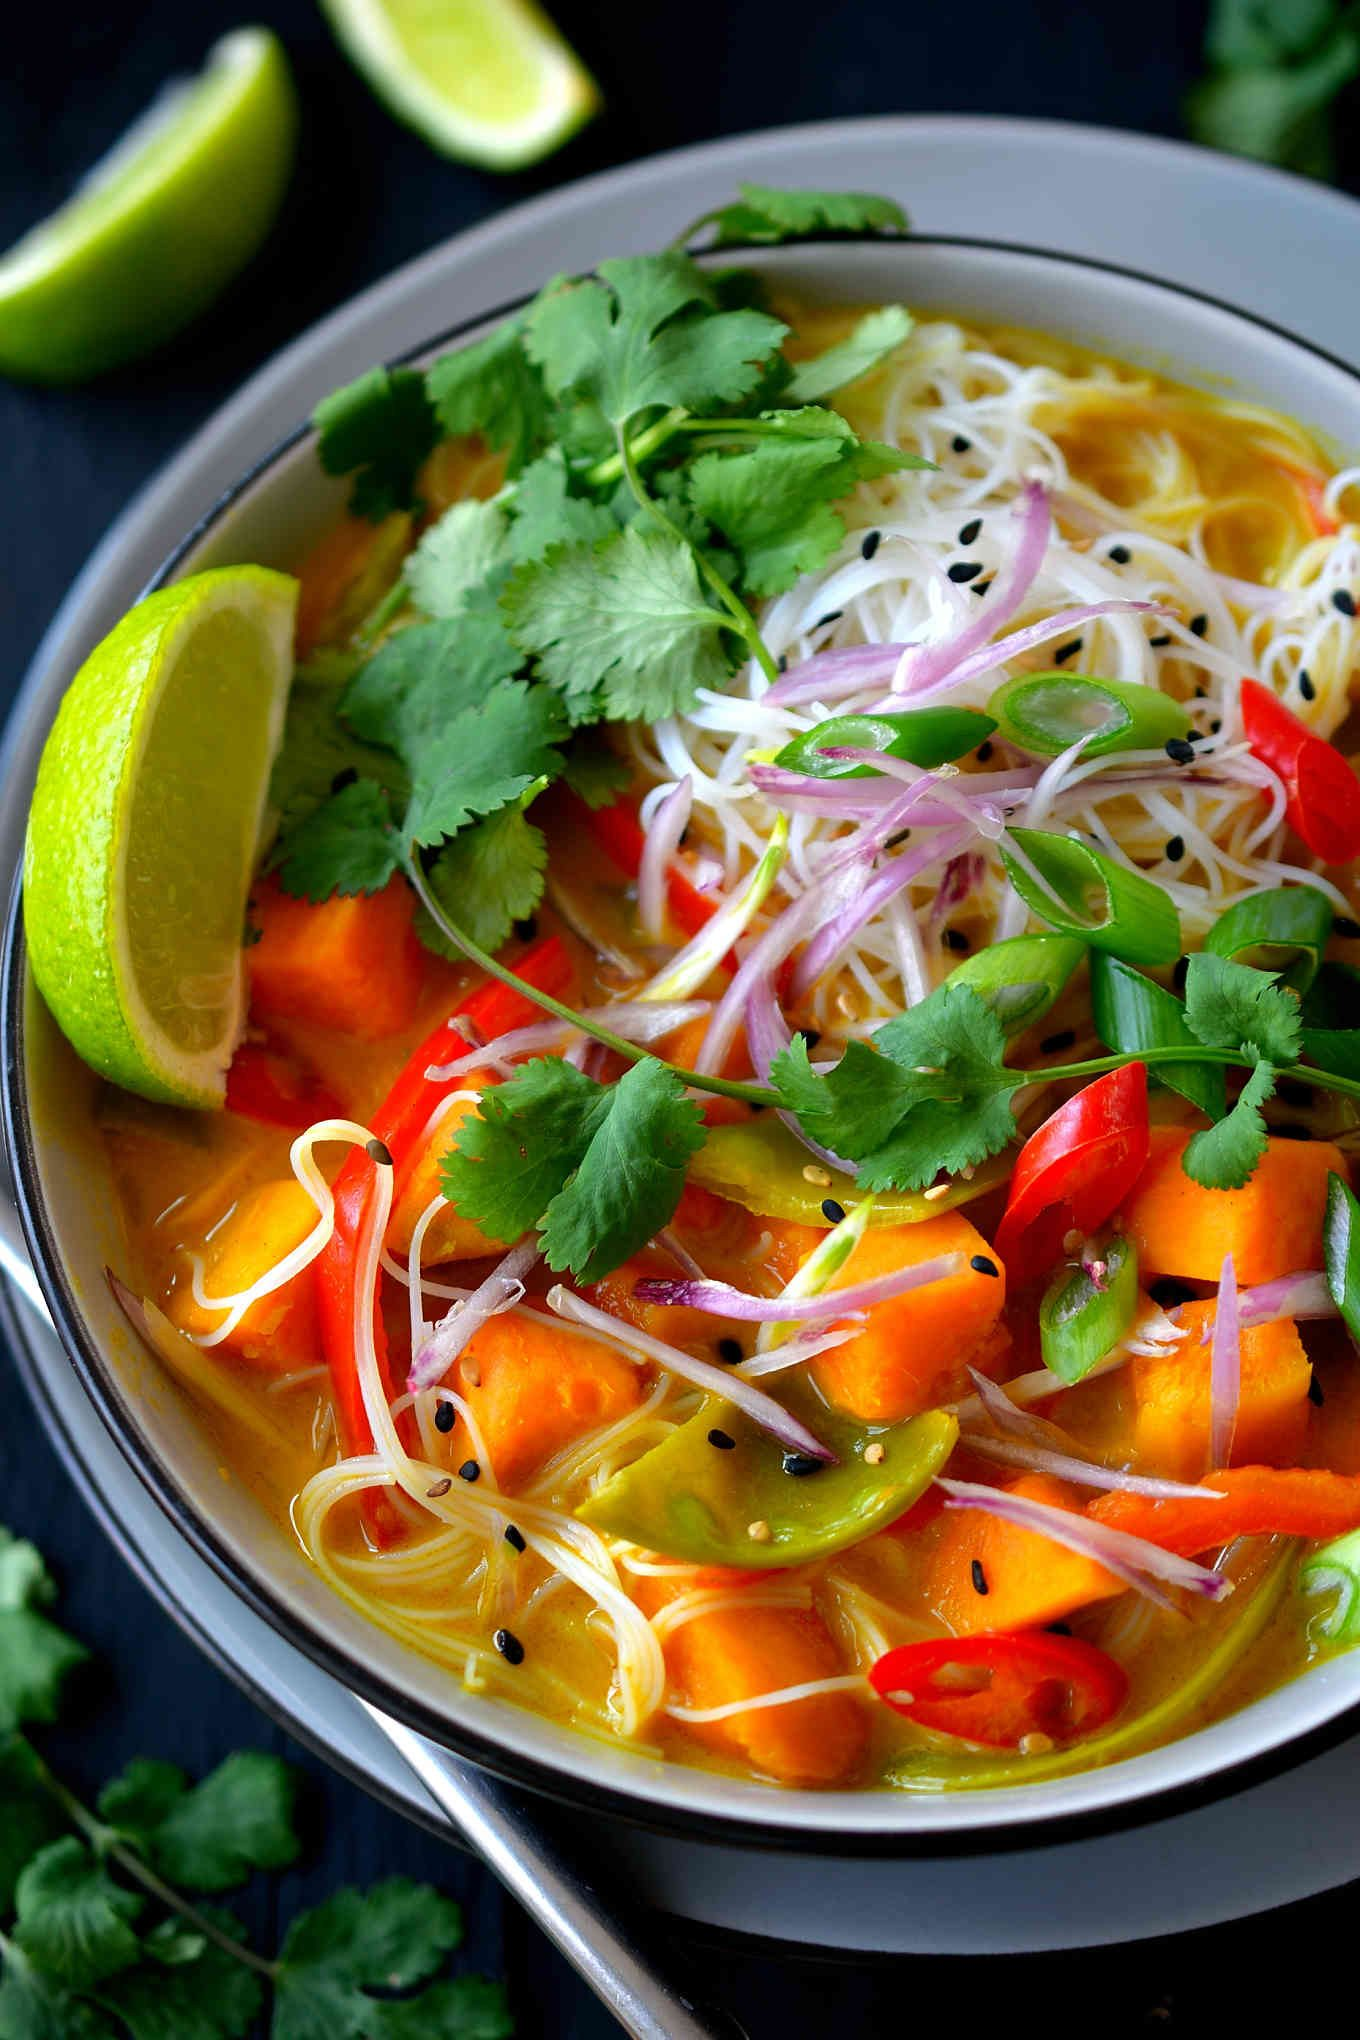 Vegetarian thai soup cilantro and citronella this vegetarian thai soup is a hearty dish brimming with vegetables rice noodles and herbs forumfinder Image collections